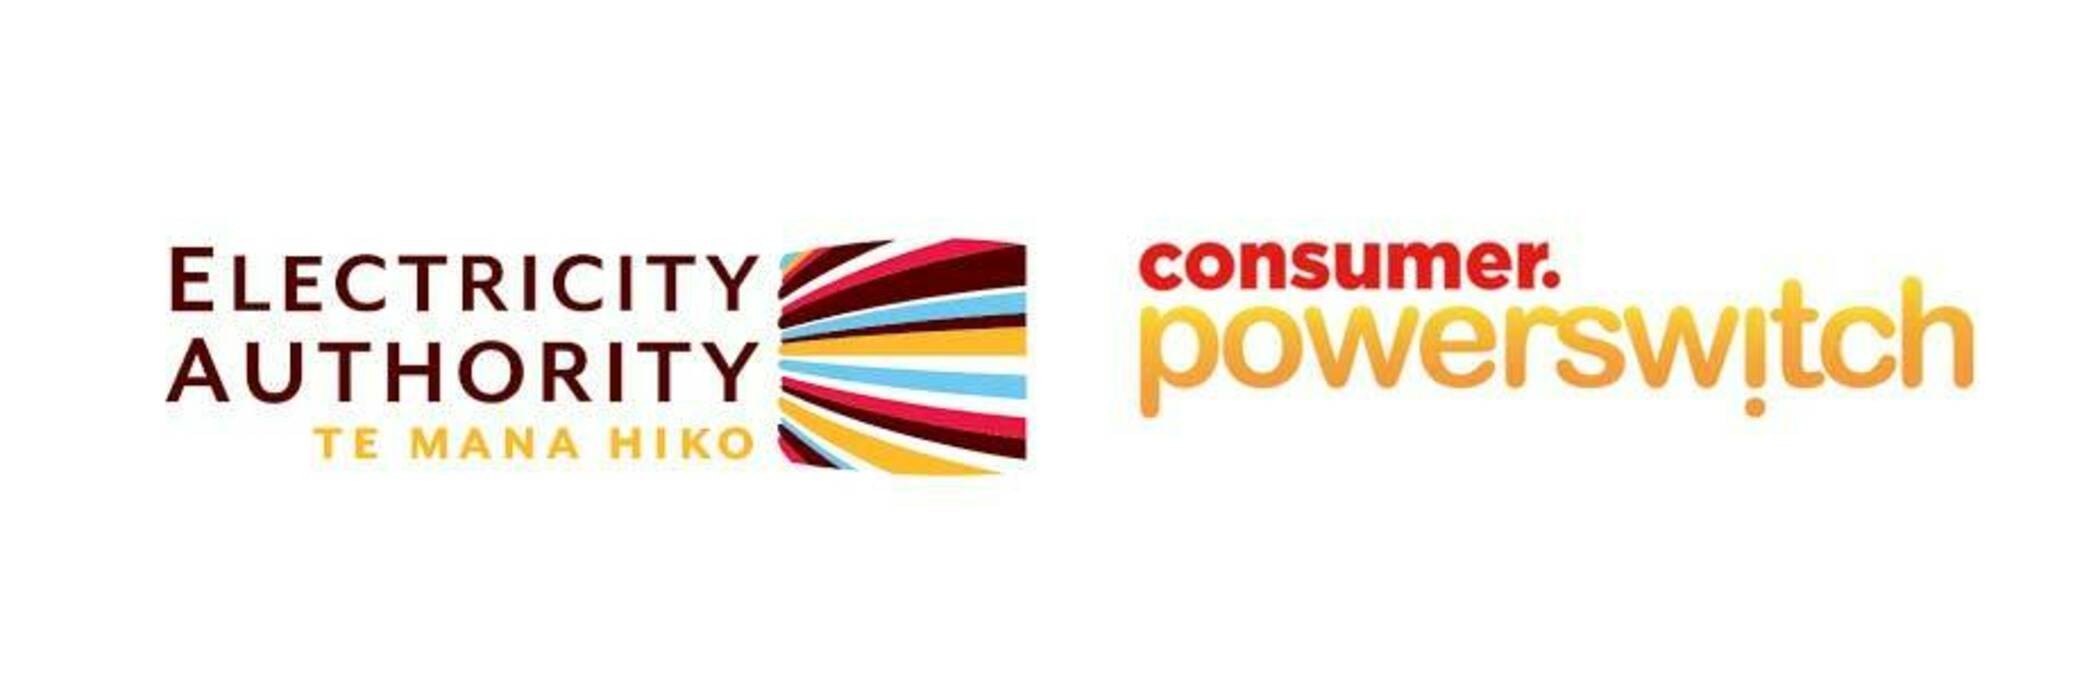 Electricity Authority and Consumer Powerswitch logos.